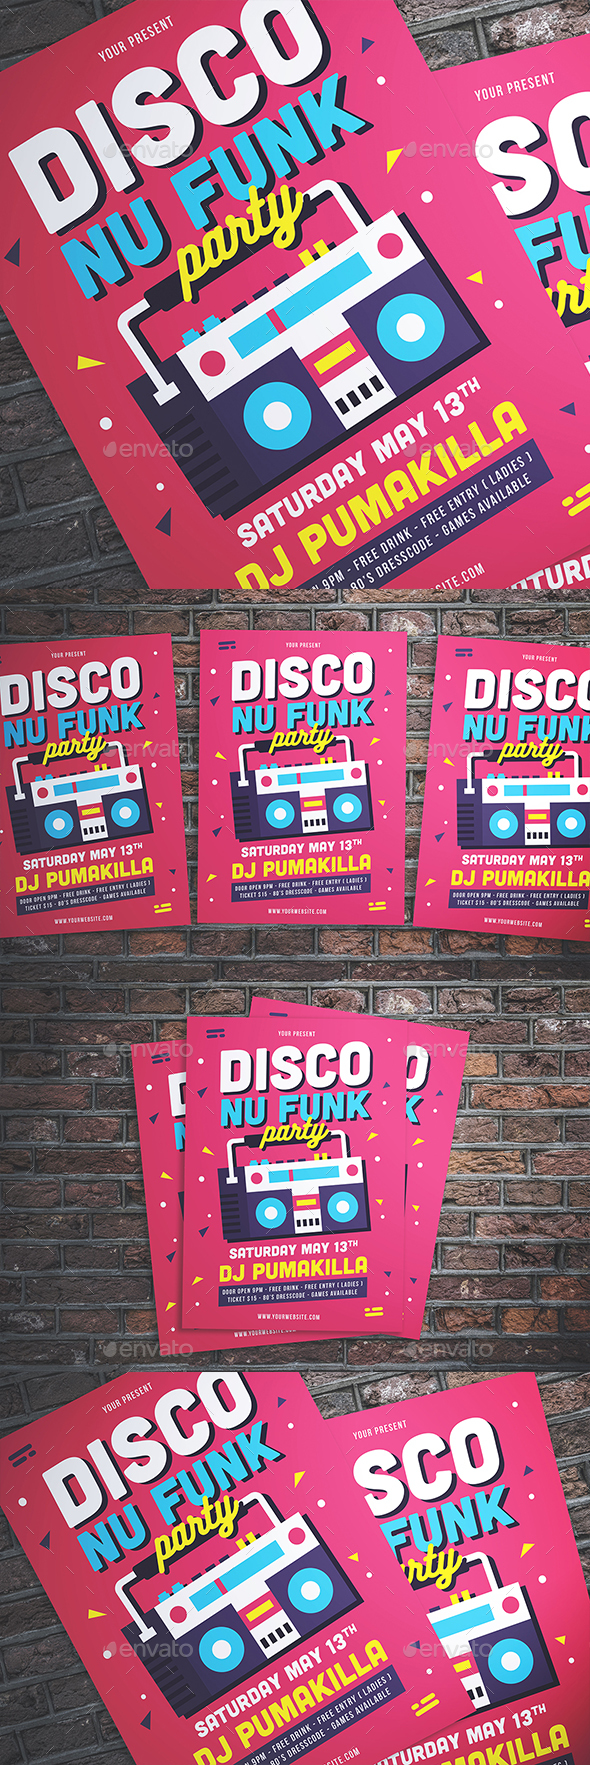 Disco Nu-Funk Party - Clubs & Parties Events